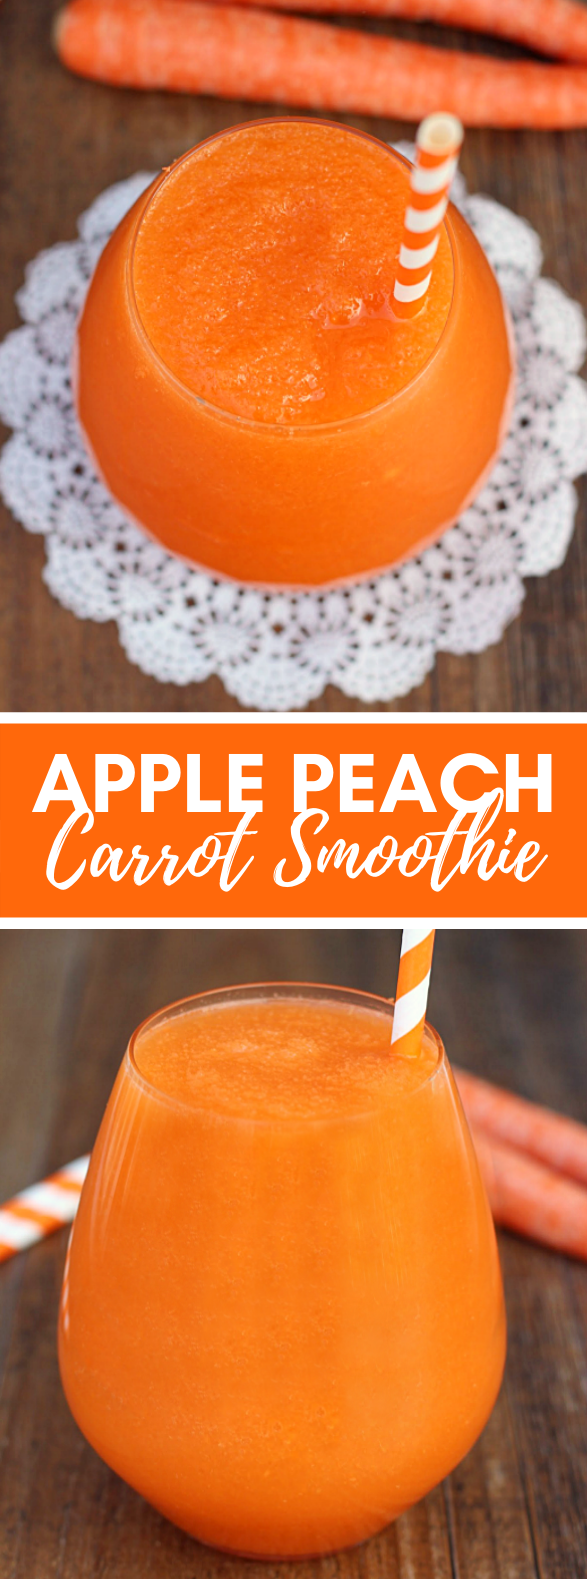 Apple Peach Carrot Smoothie #drinks #healthy